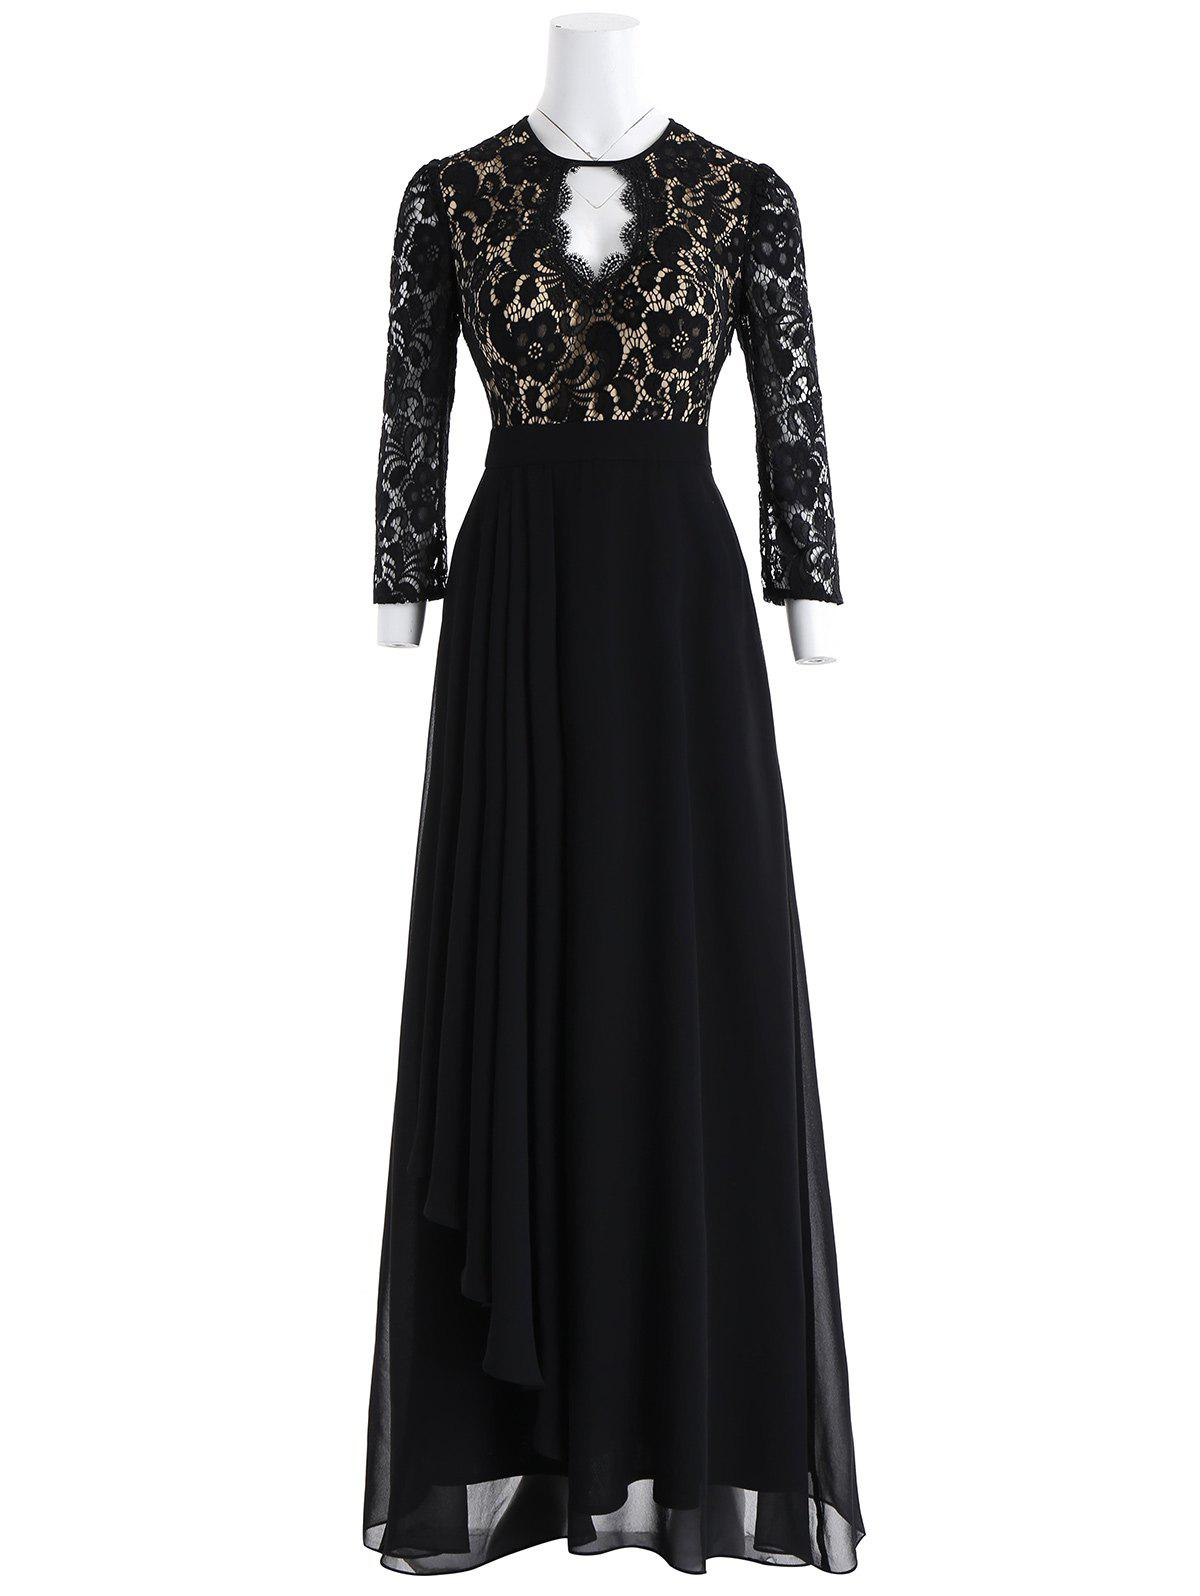 Keyhole Floral Lace Formal Evening Dress - BLACK L